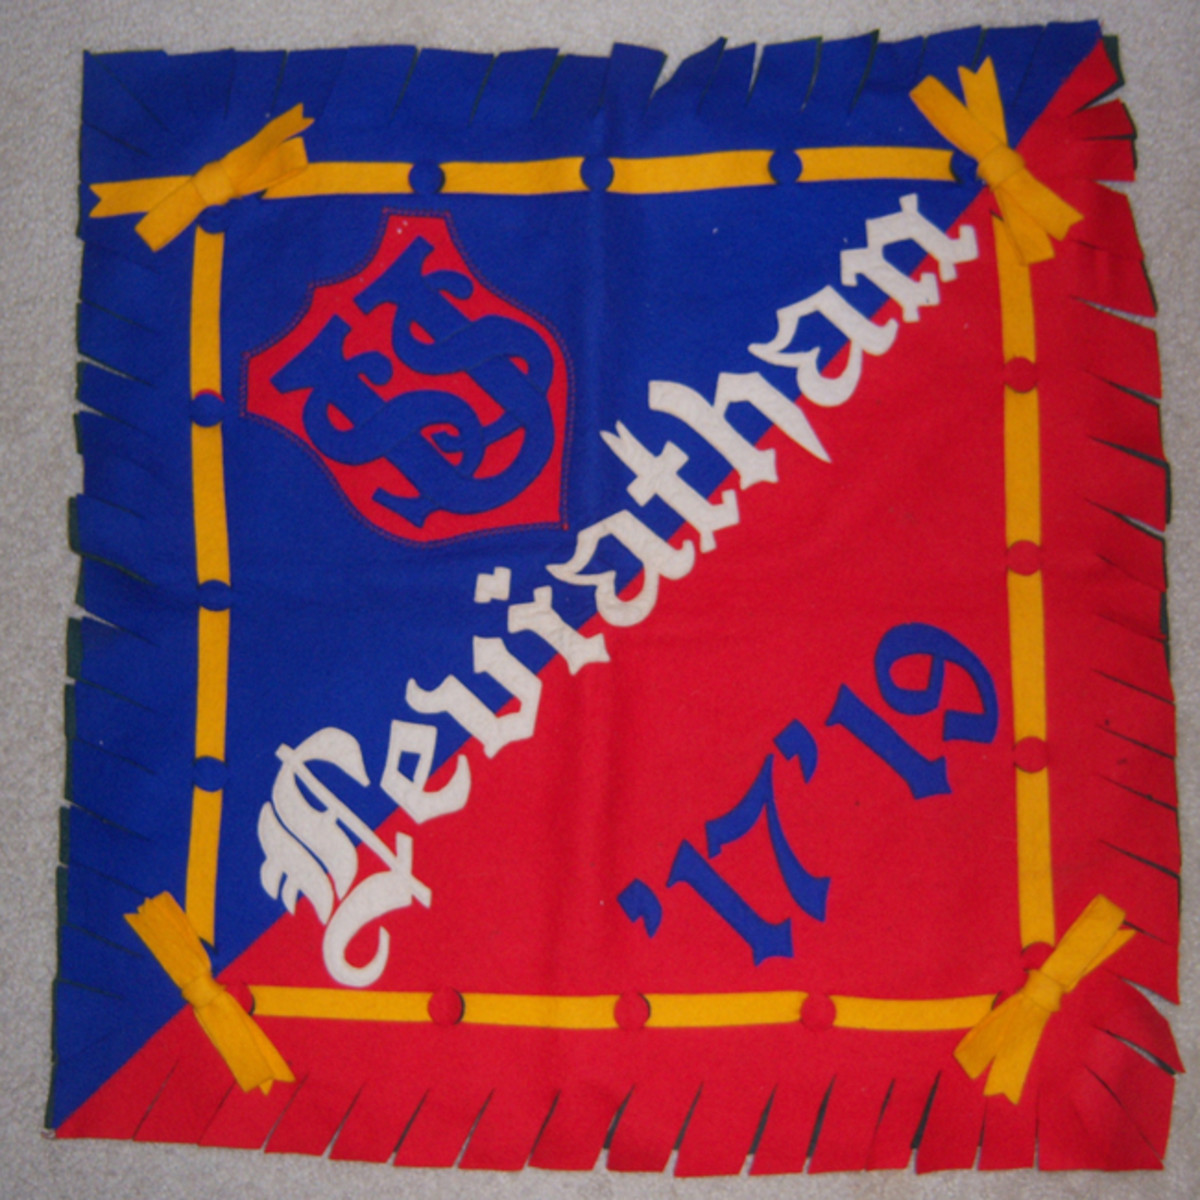 And what's an AEF or US Navy collection without one of the popular pillow case/covers? This brightly colored example for the USS Leviathan was probably a souvenir from one of the sailors of the crew. Reportedly, the famous actor Humphrey Bogart served on the Leviathan during the war.